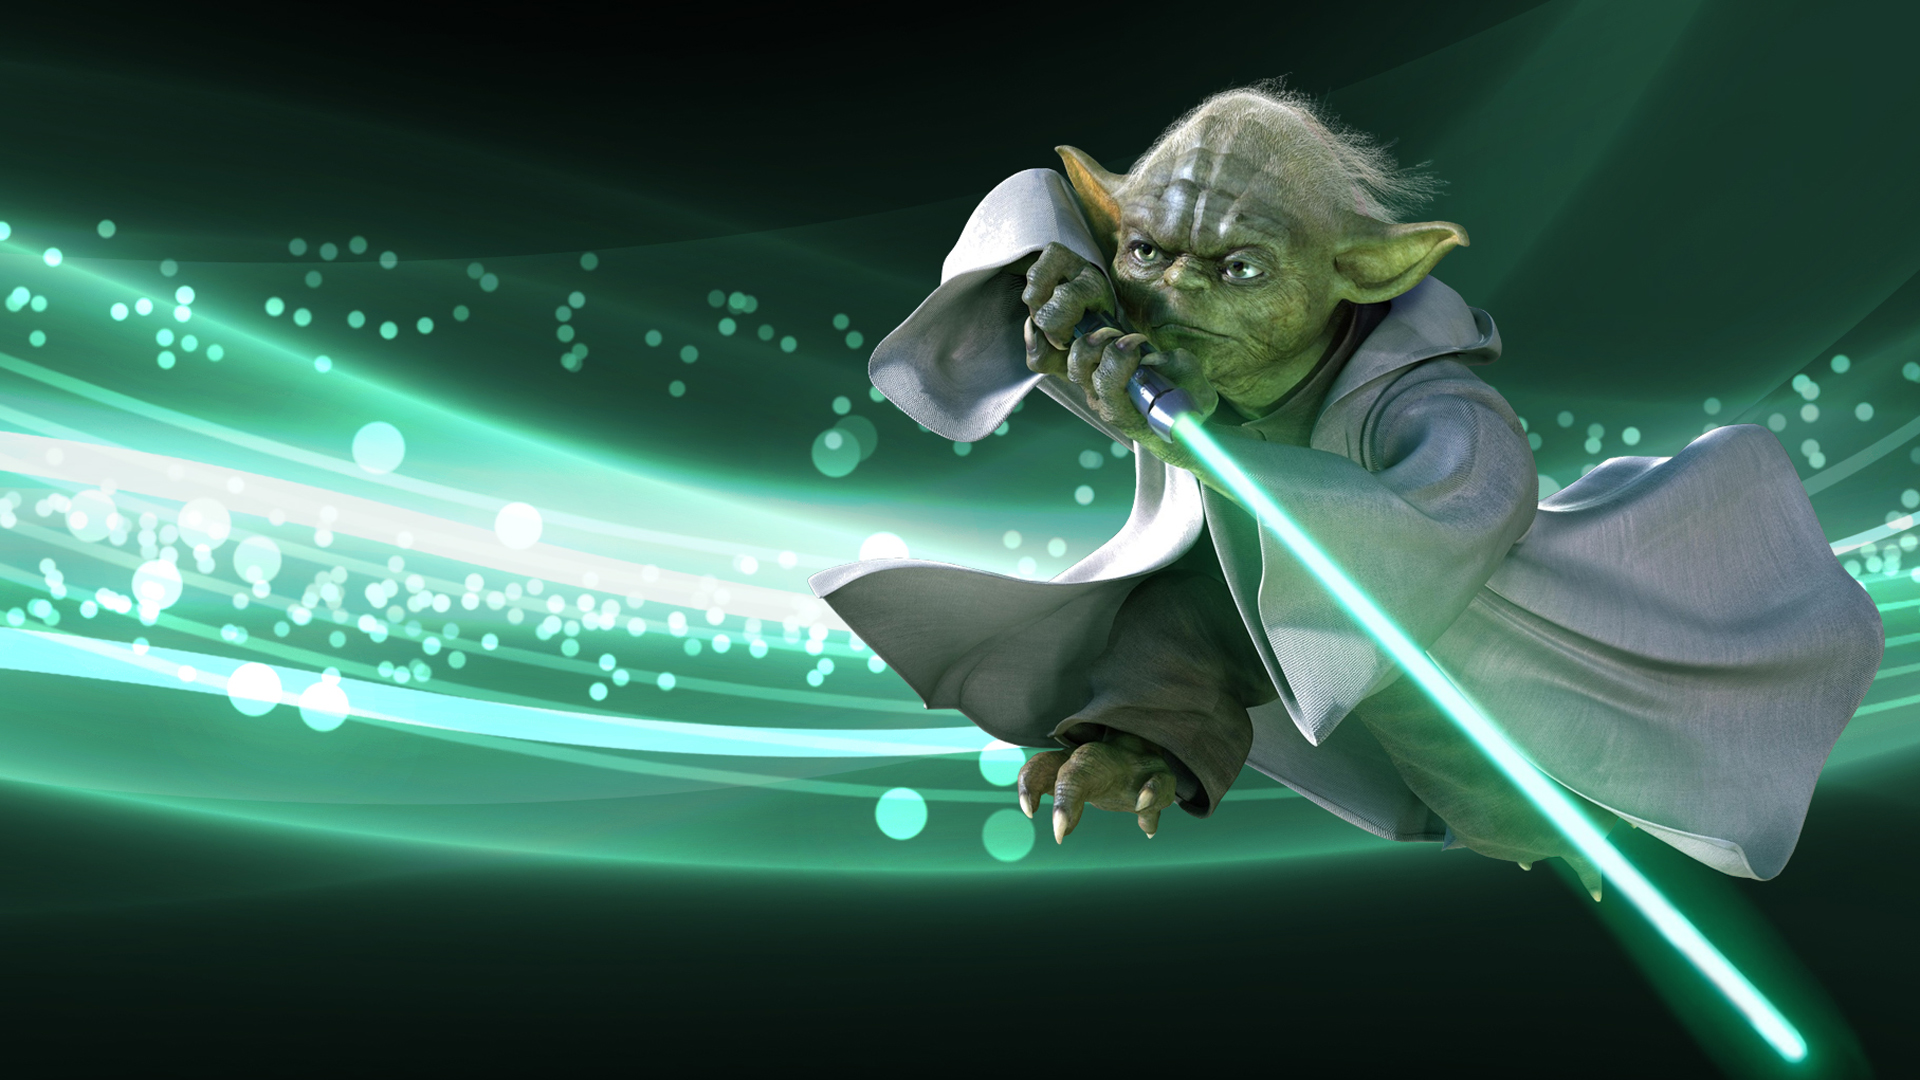 Yoda 1920x1080 Version Wallpaper Star Wars by BlackLotusXX on 1920x1080